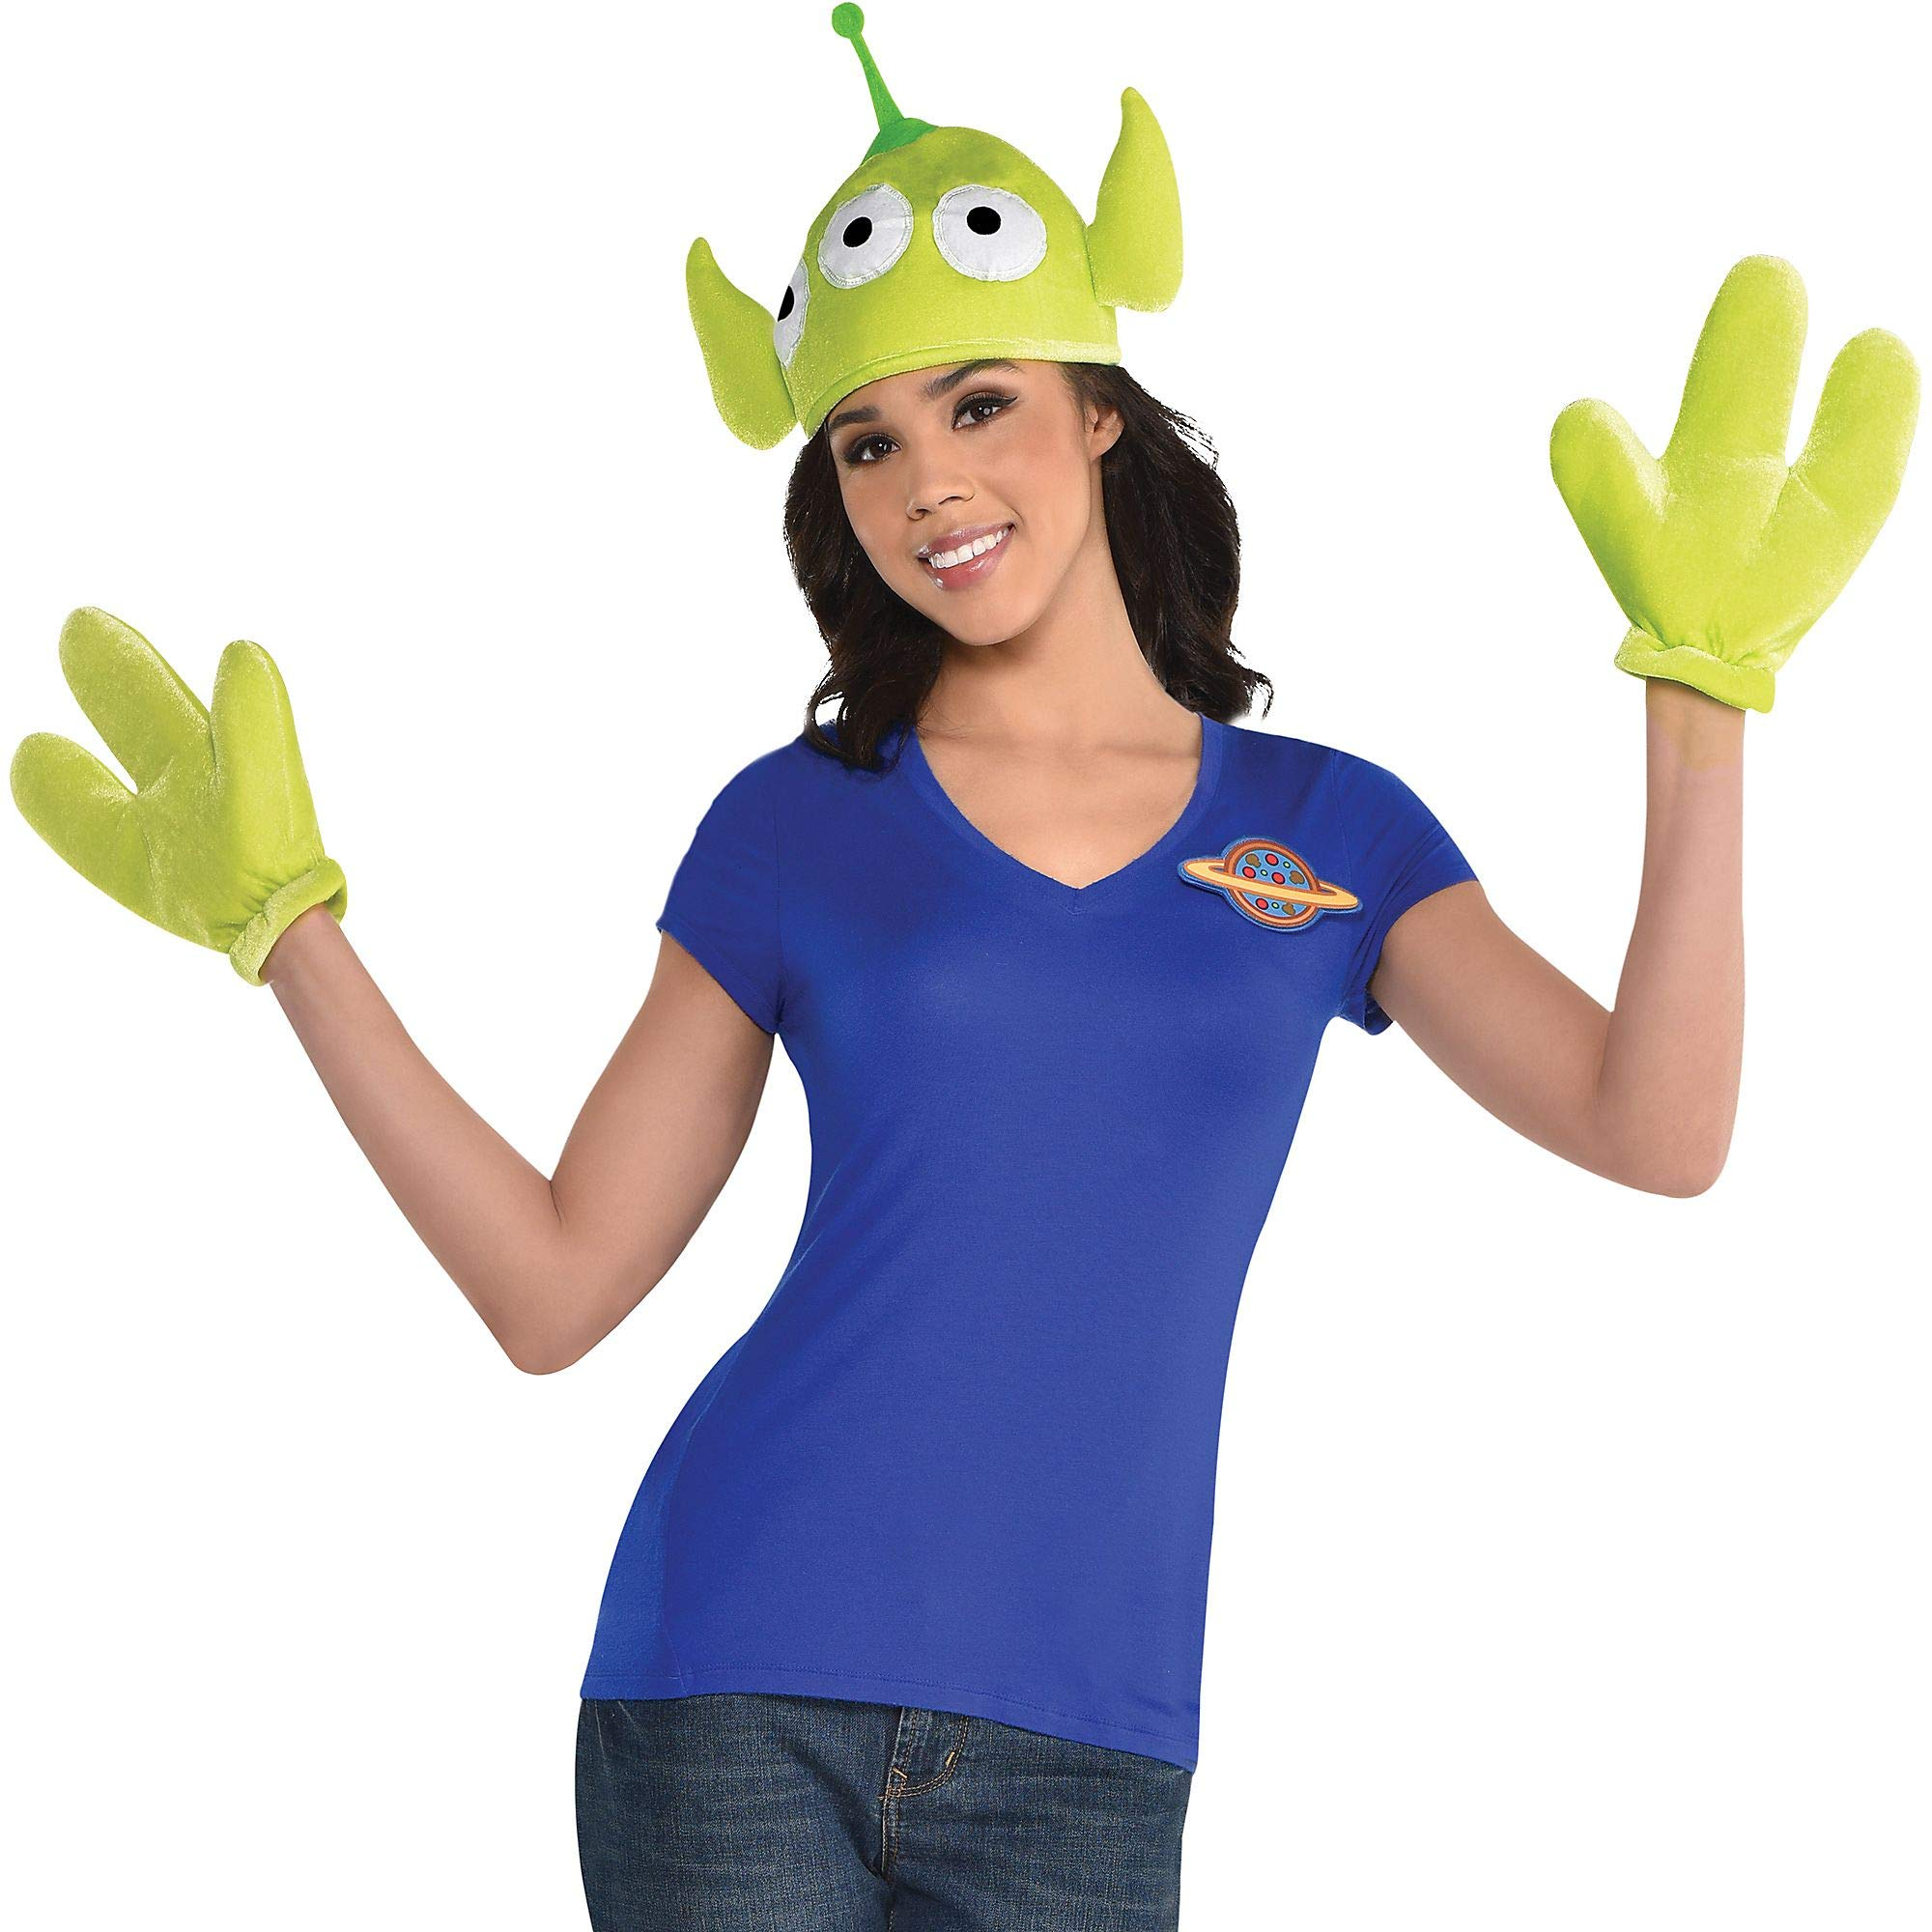 Toy Story 4 Halloween Costumes.Party City 3 Eyed Alien Halloween Costume Accessory Kit For Children Toy Story 4 Standard Size